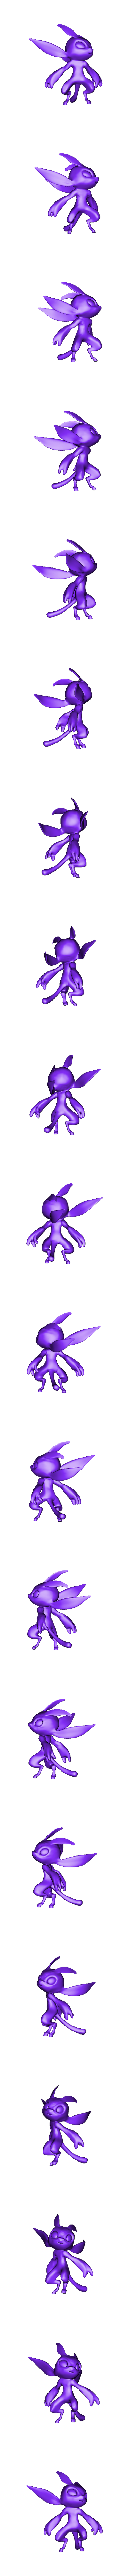 Ori_high.stl Download free STL file Ori • 3D printable object, Blascool